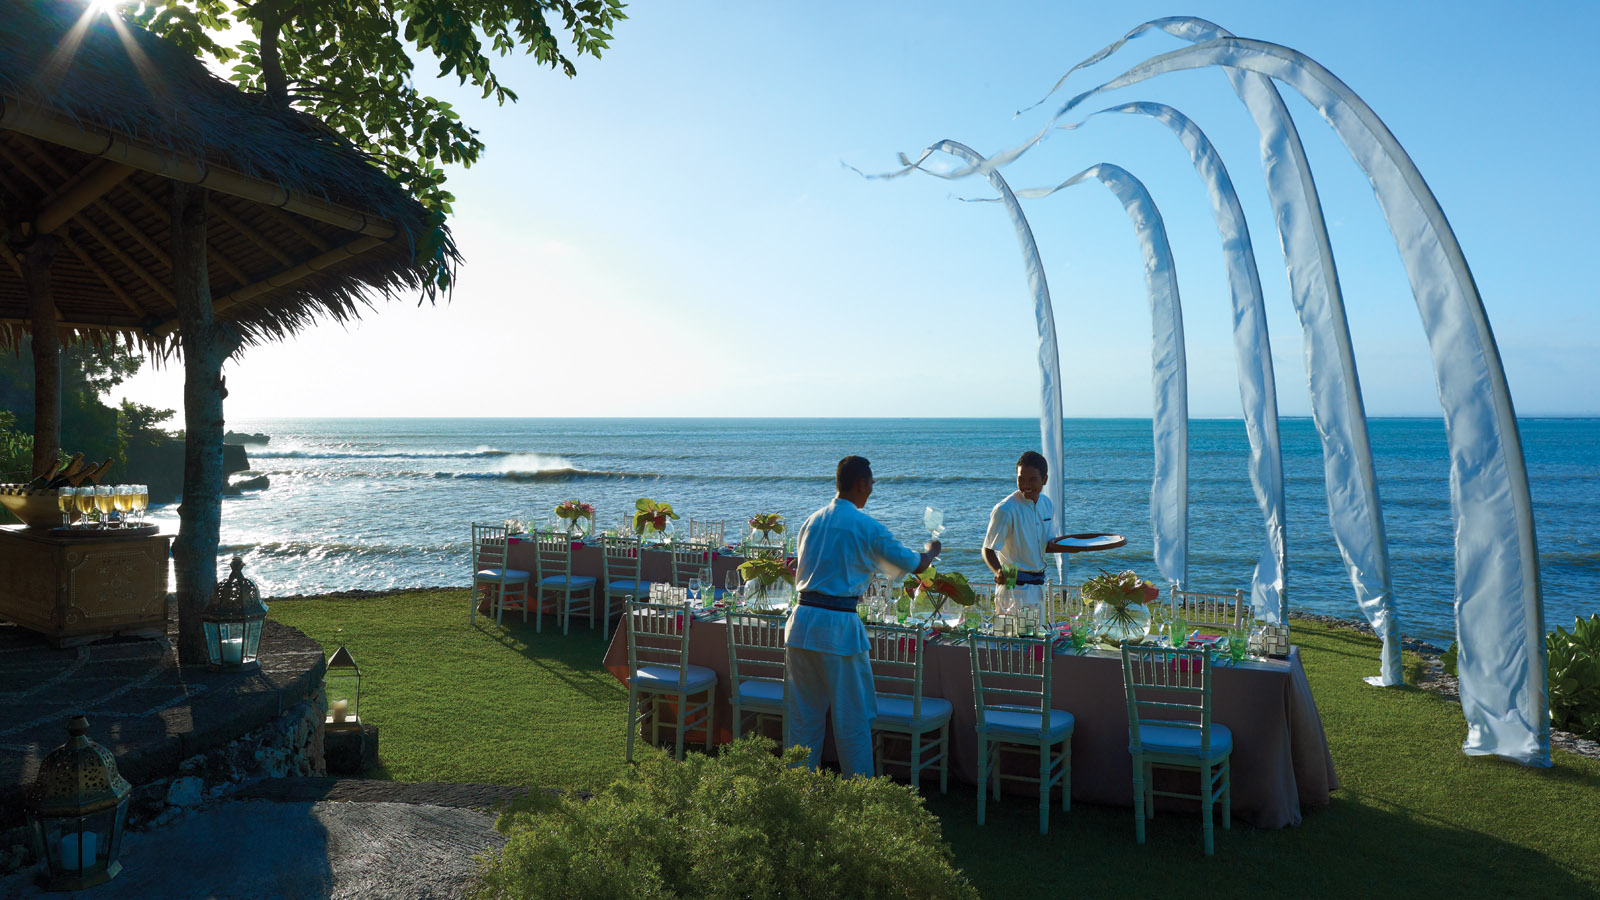 Island Gazebo in Four Seasons Resort Bali at Jimbaran Bay